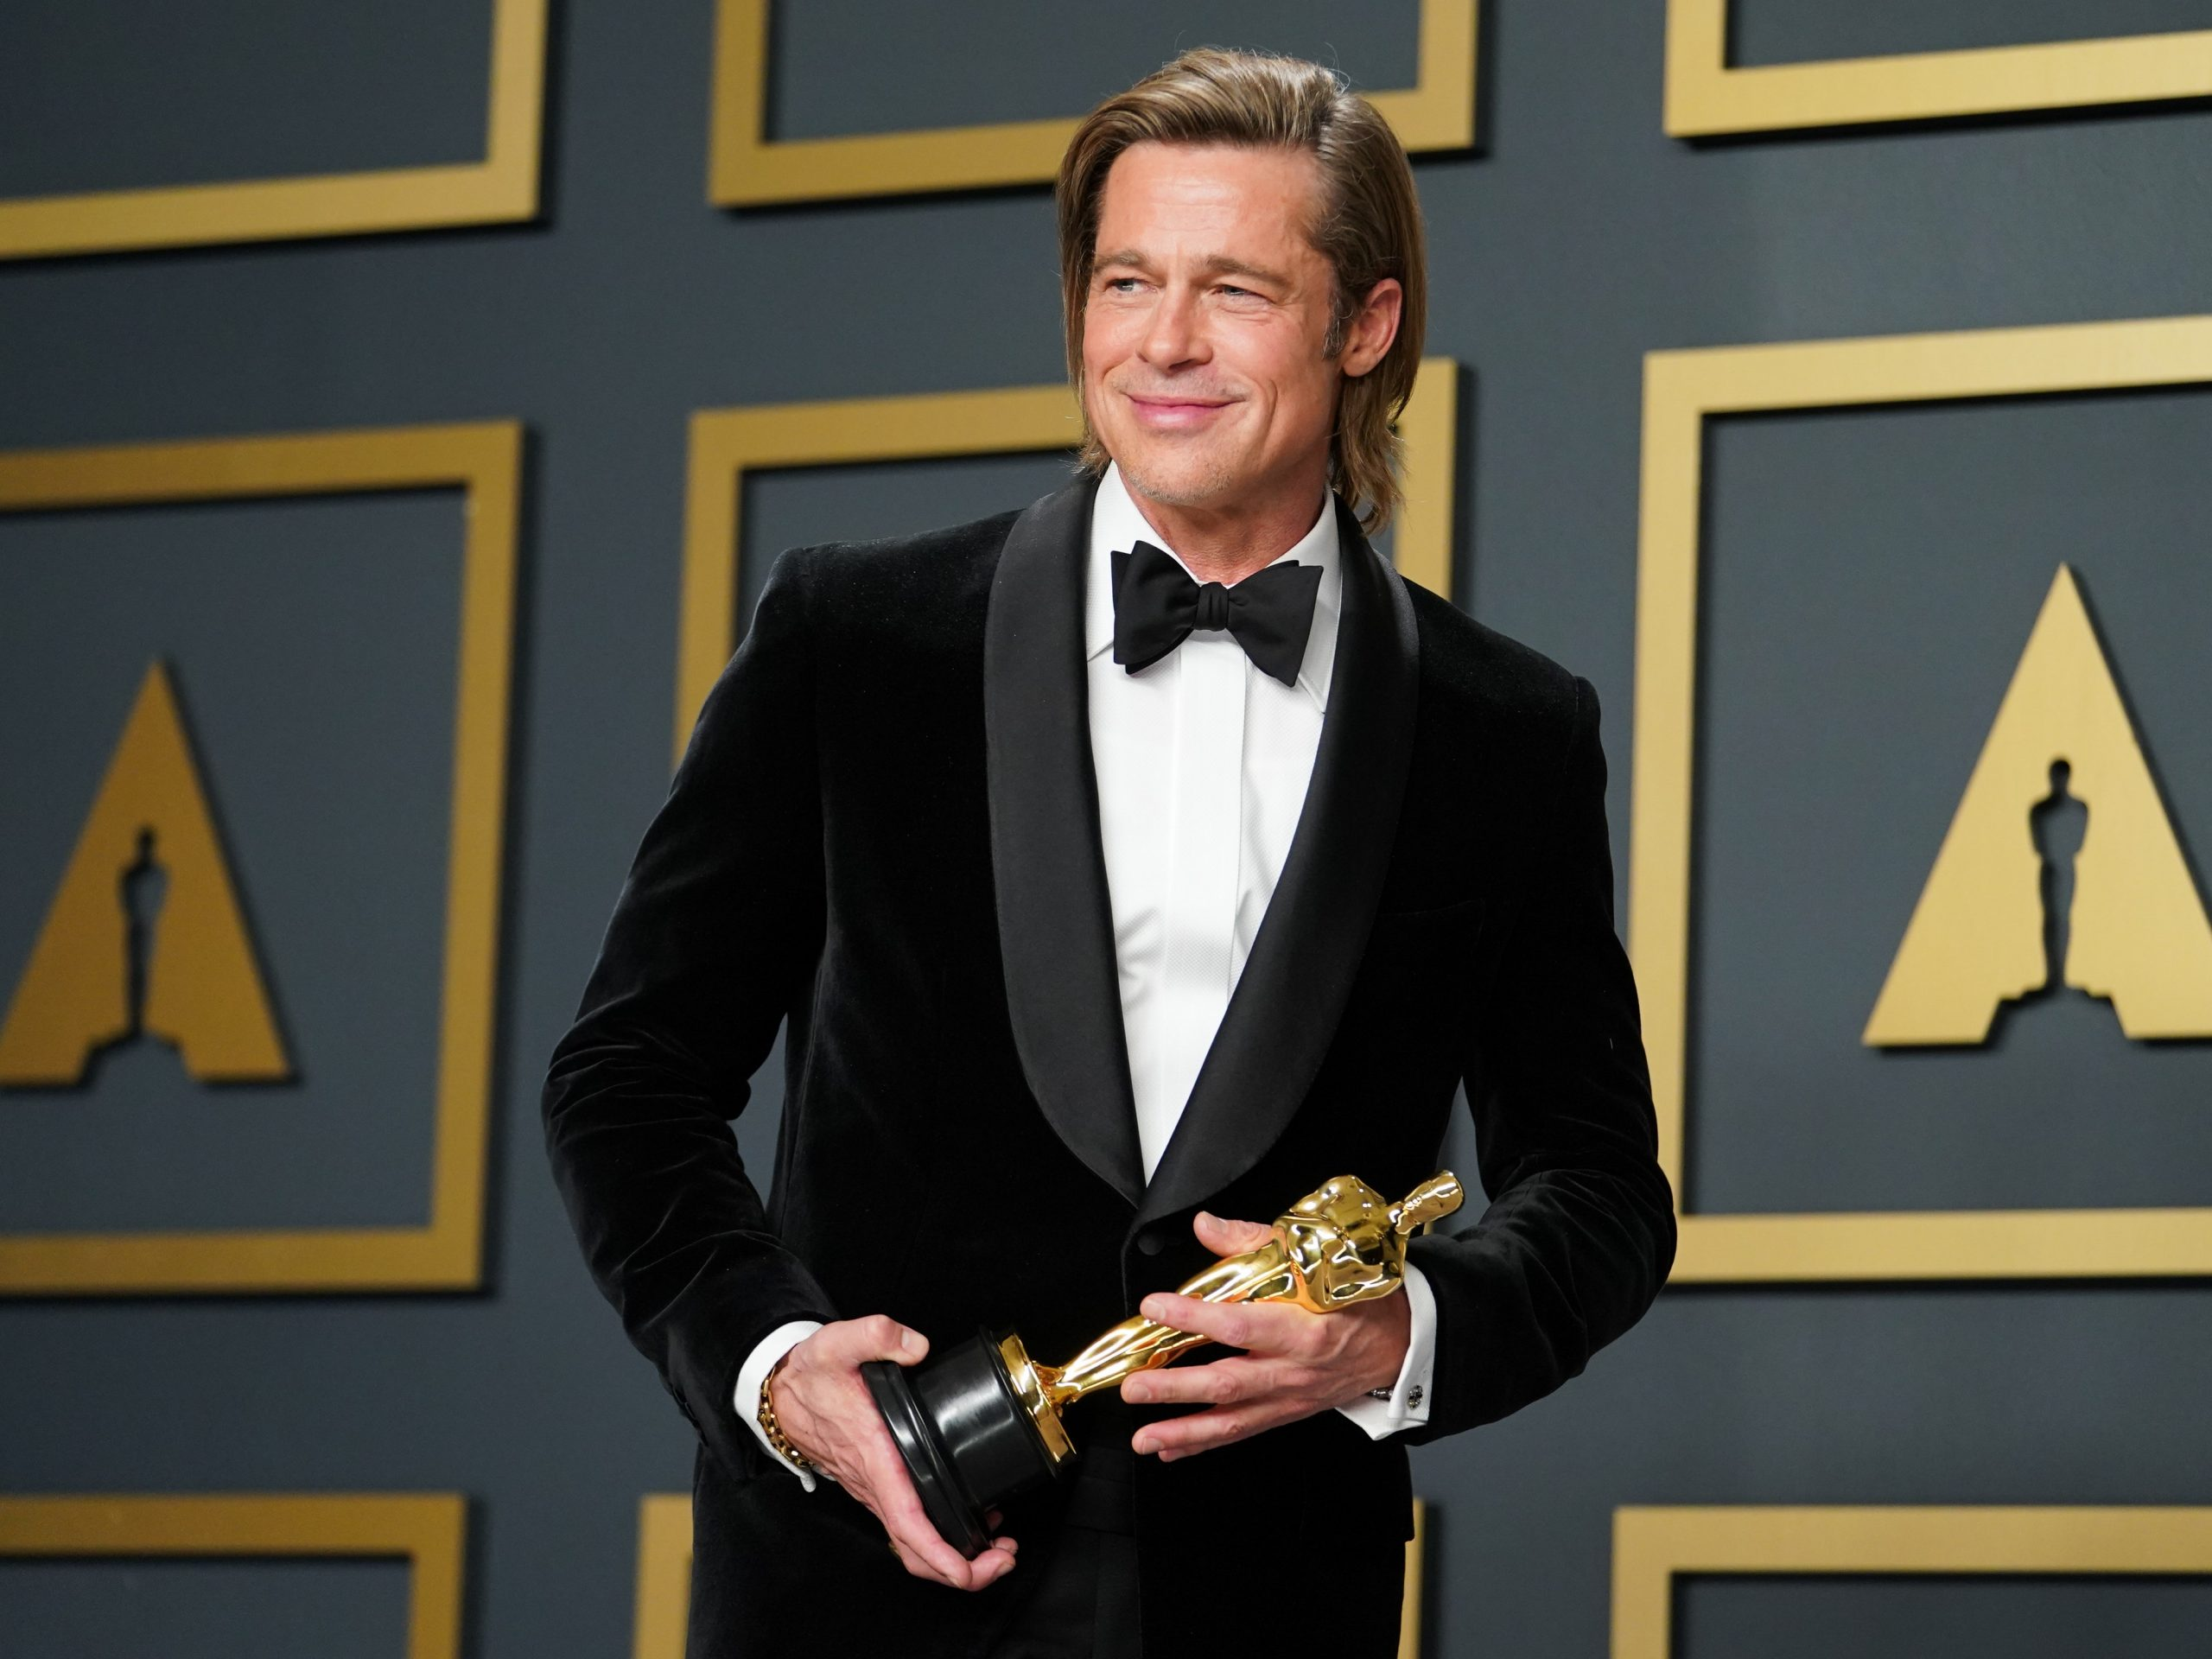 Brad Pitt at Oscars 2020